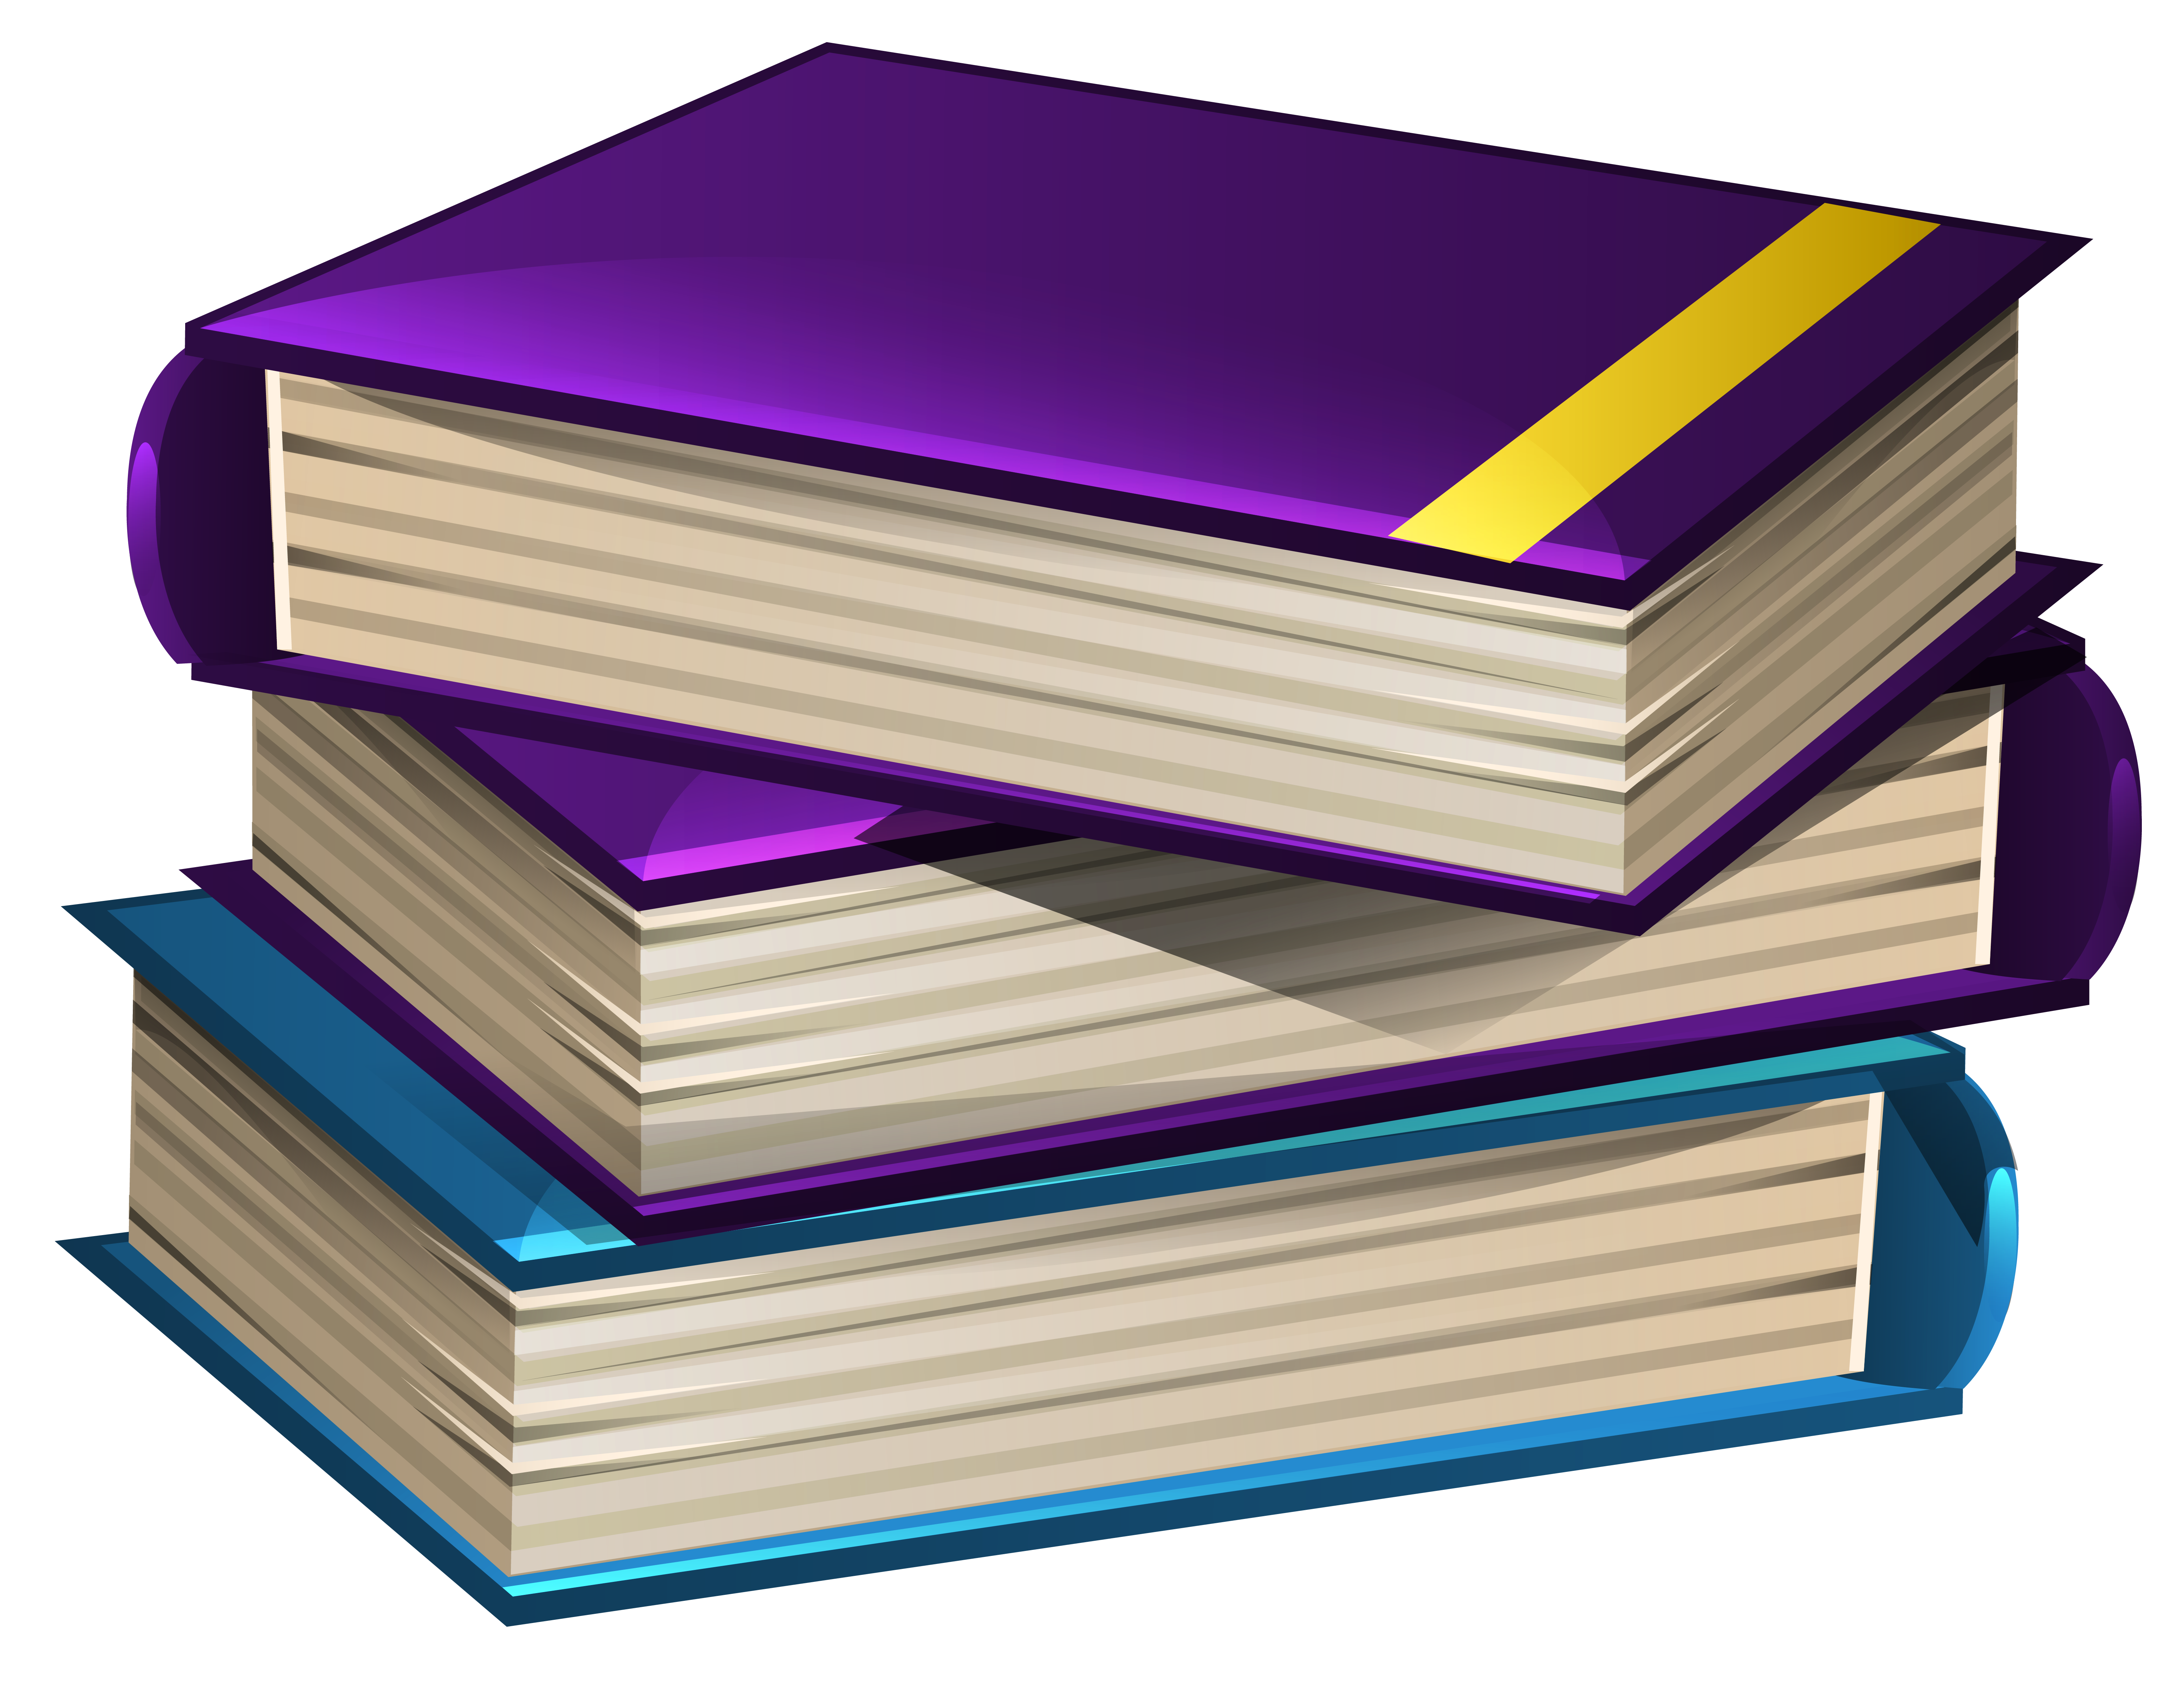 School png image gallery. Books clipart transparent background